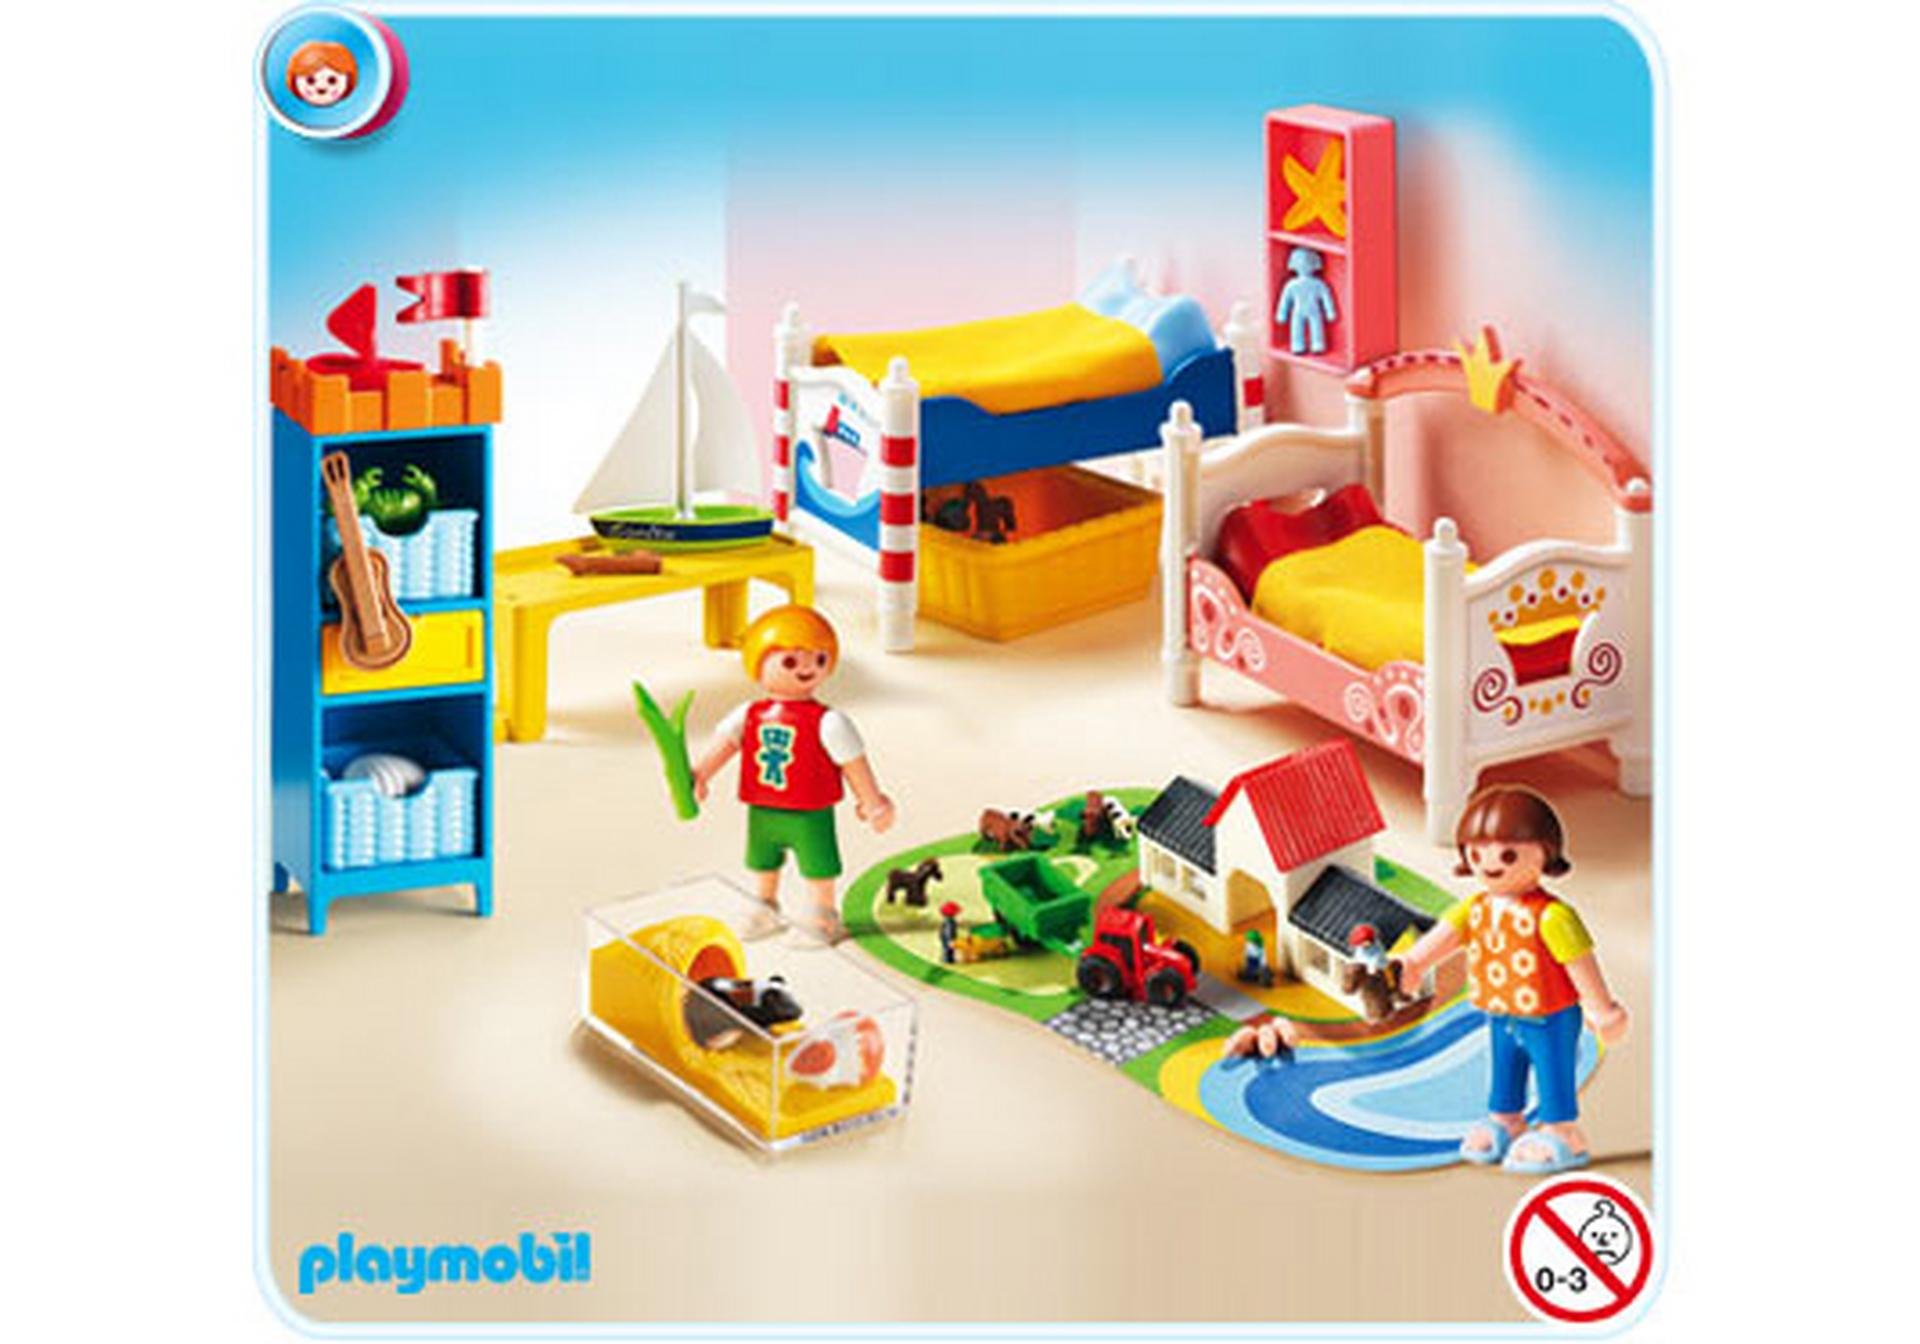 chambre des enfants avec lits d cor s 5333 a playmobil. Black Bedroom Furniture Sets. Home Design Ideas